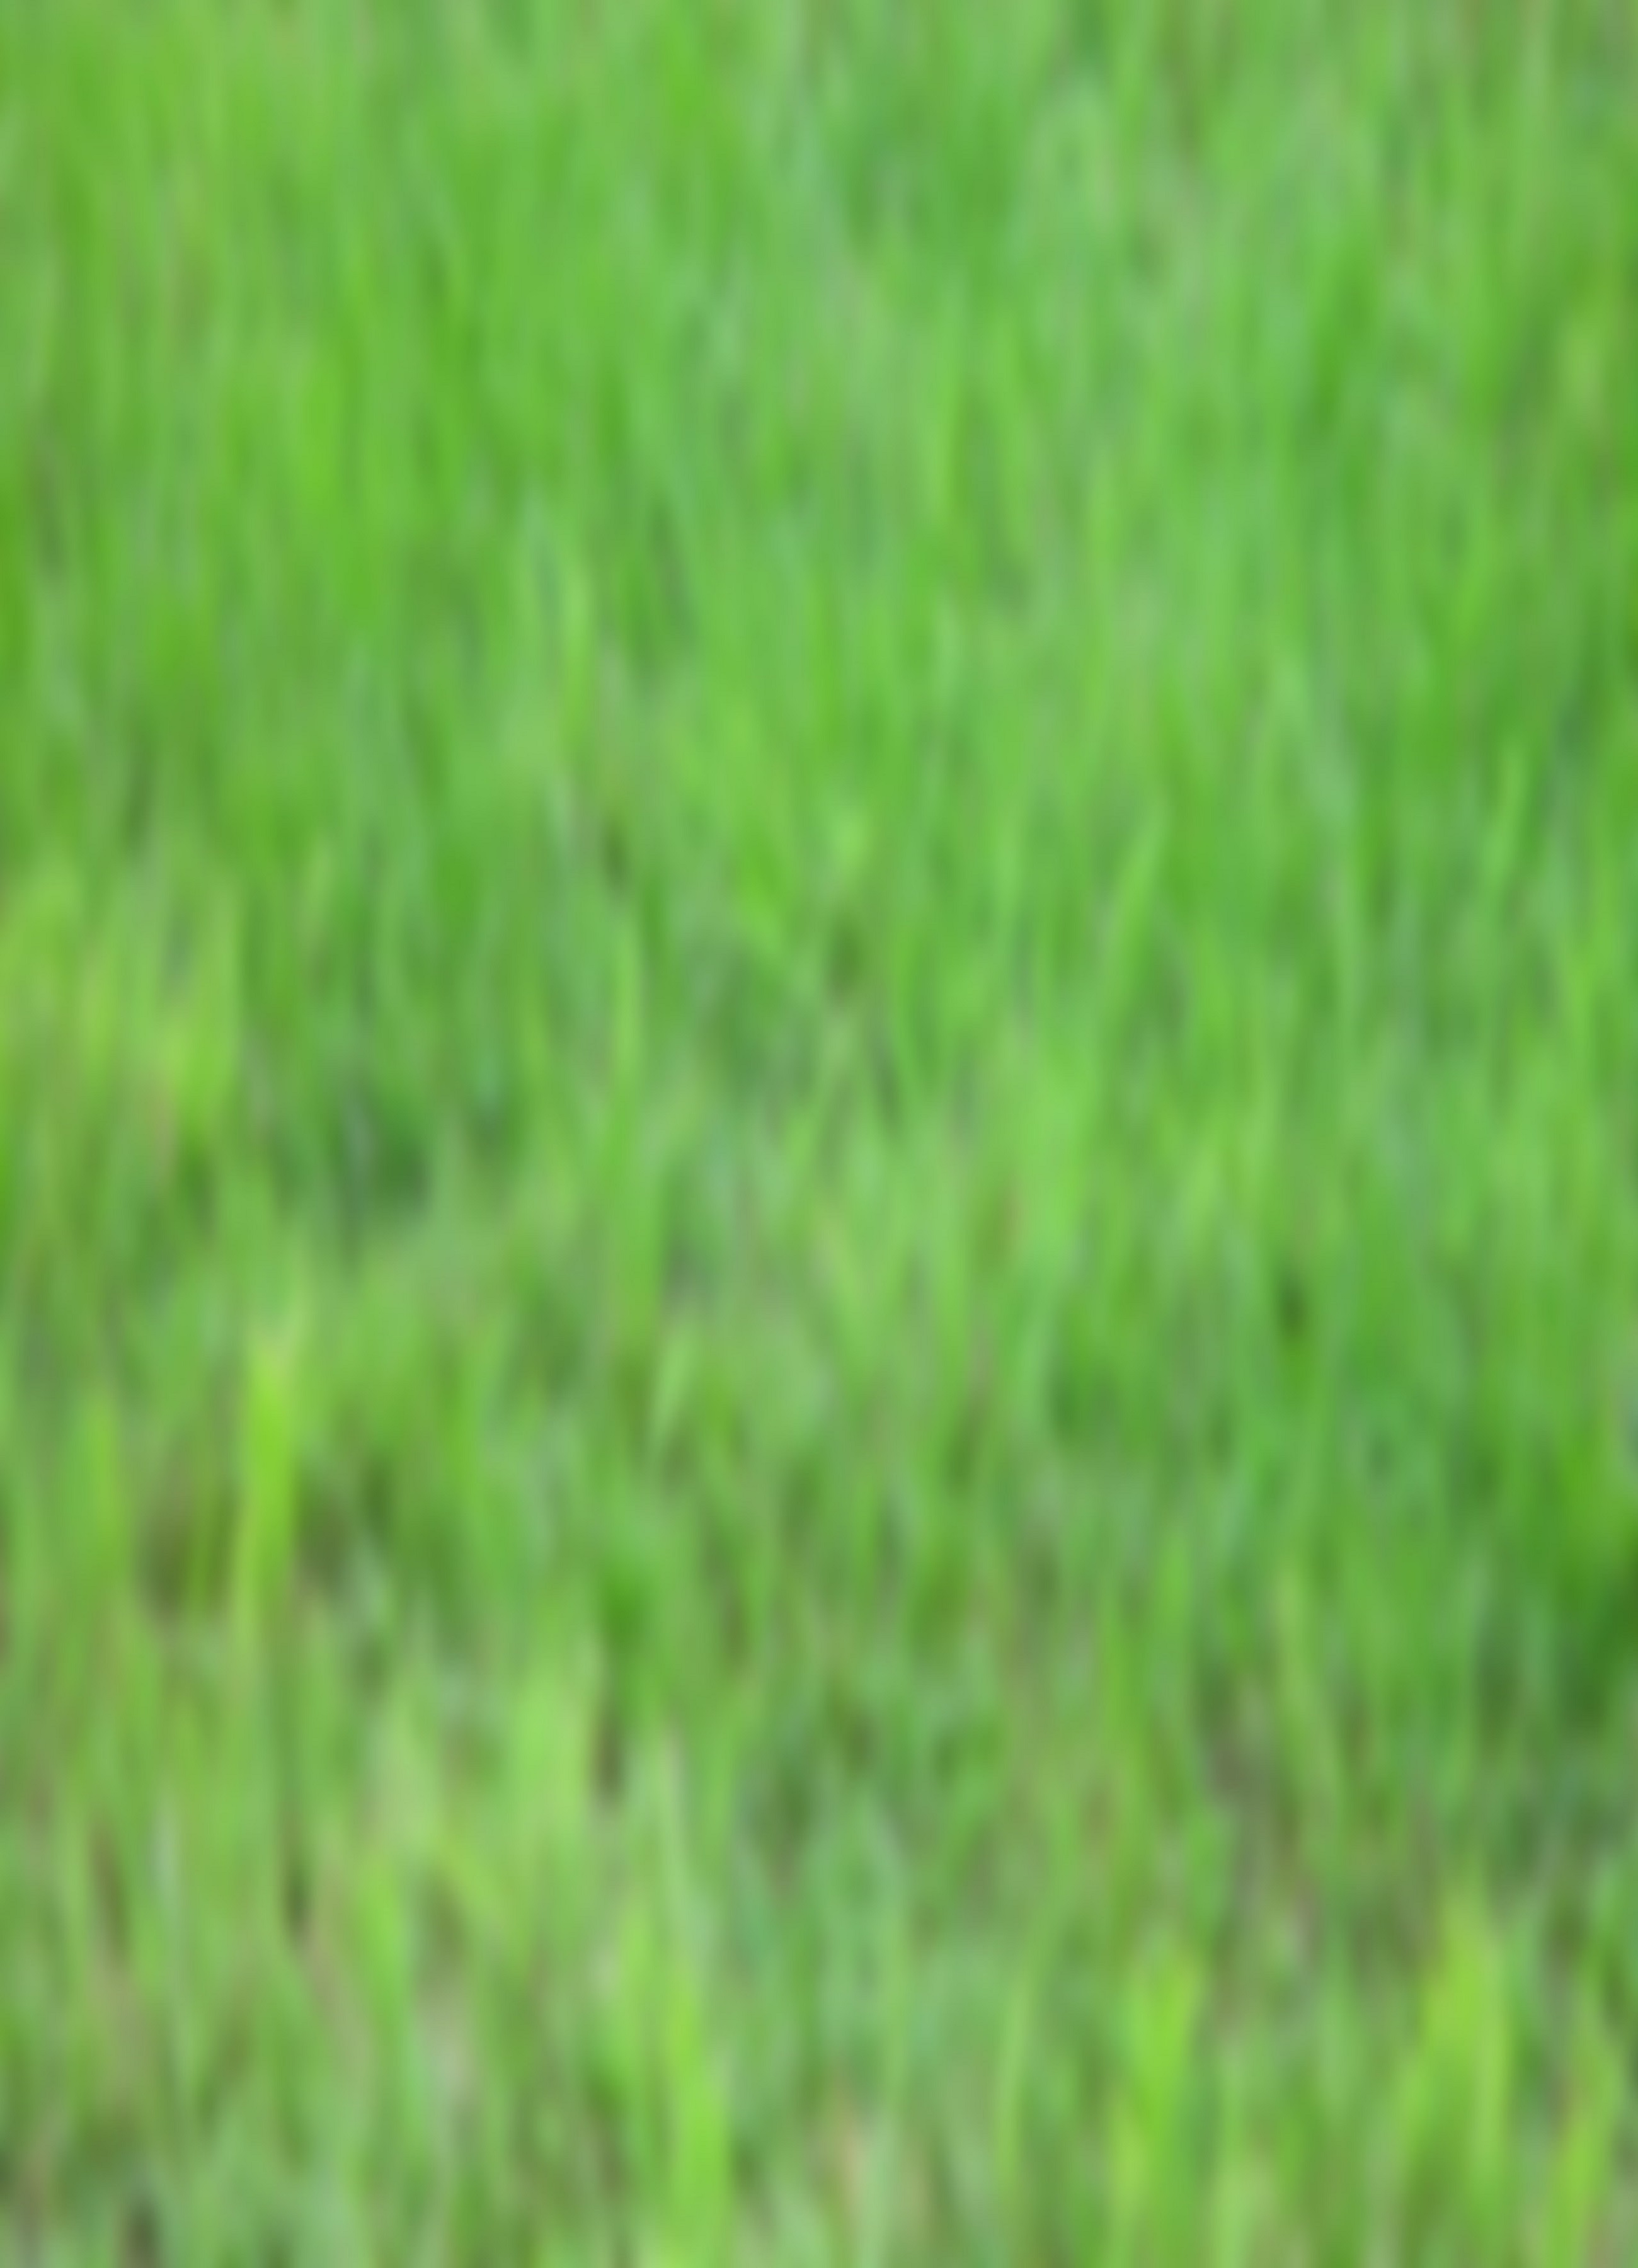 blurred grass12